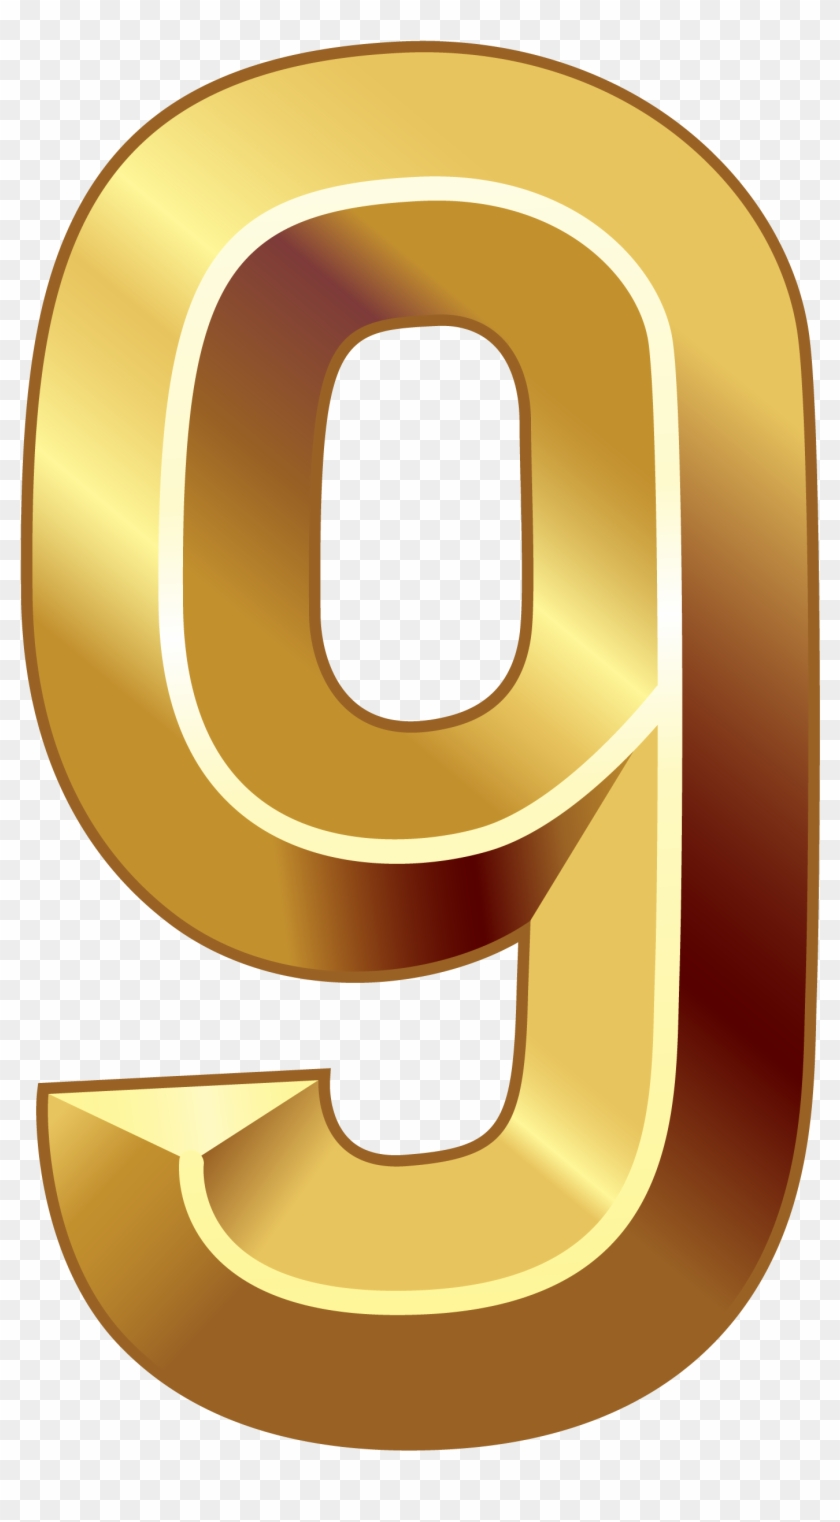 Number Clip Art - Golden Number 0 Png #244098